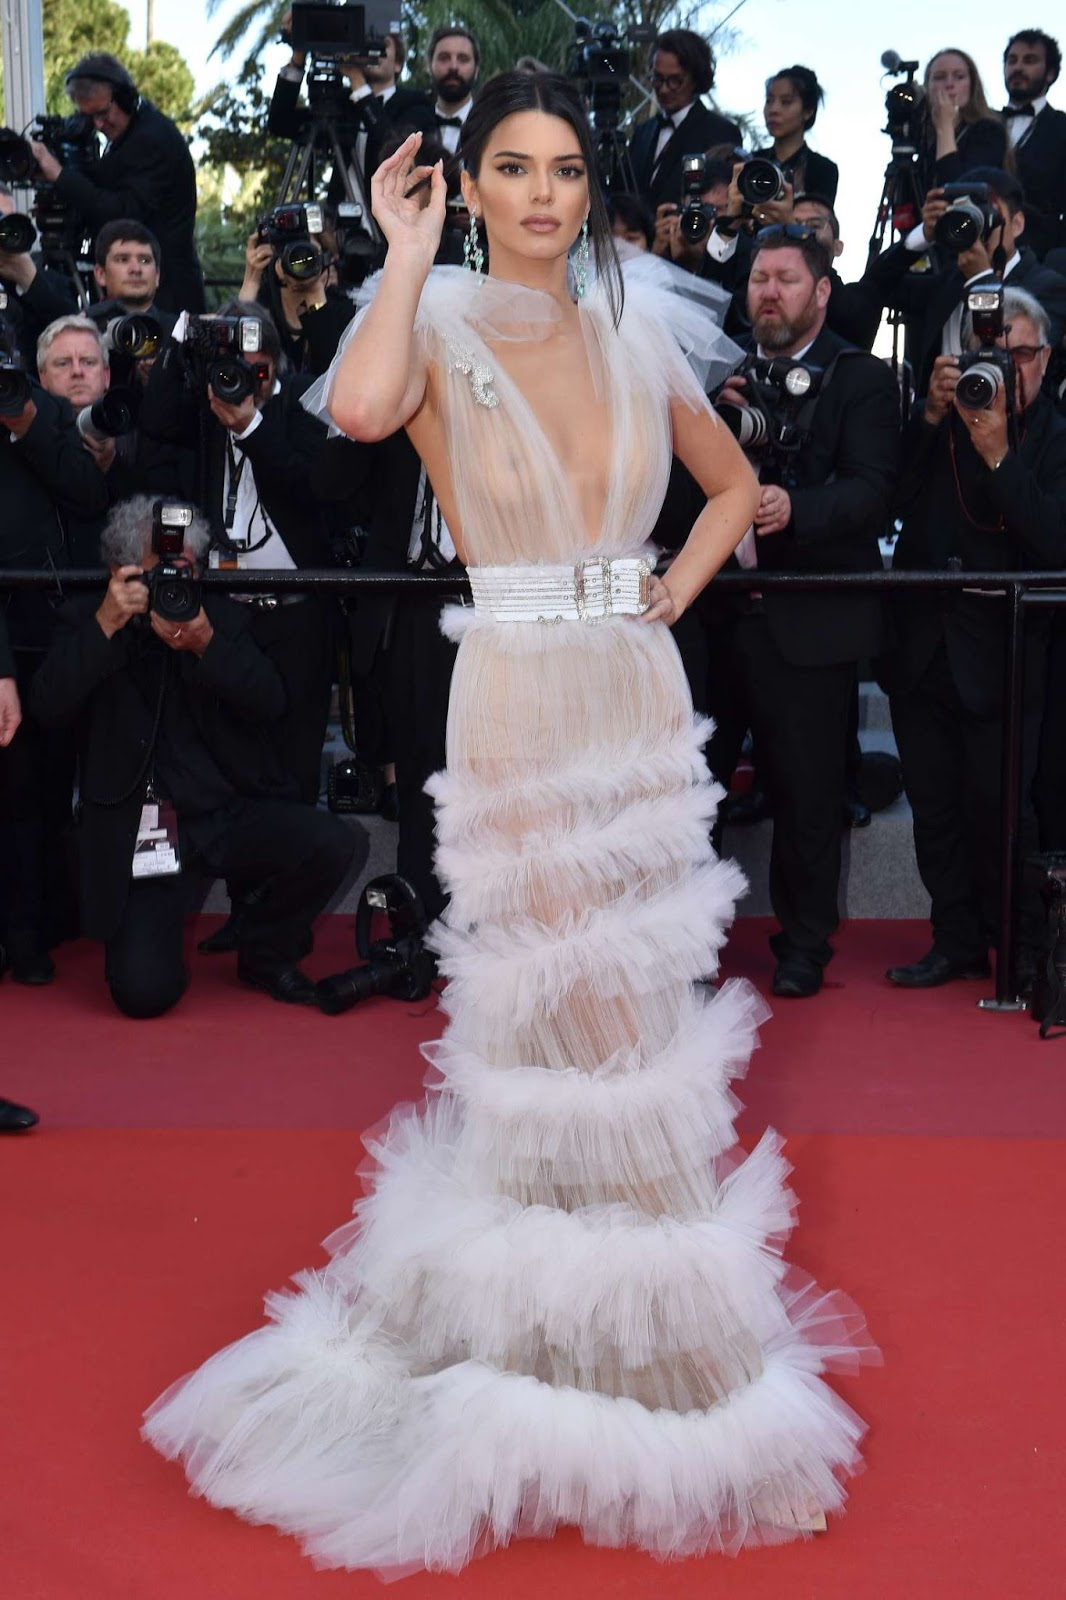 Kendall Jenner bares all as she went braless in transparent frilled gown at the star-studded Girls of the Sun premiere at Cannes Film Festival